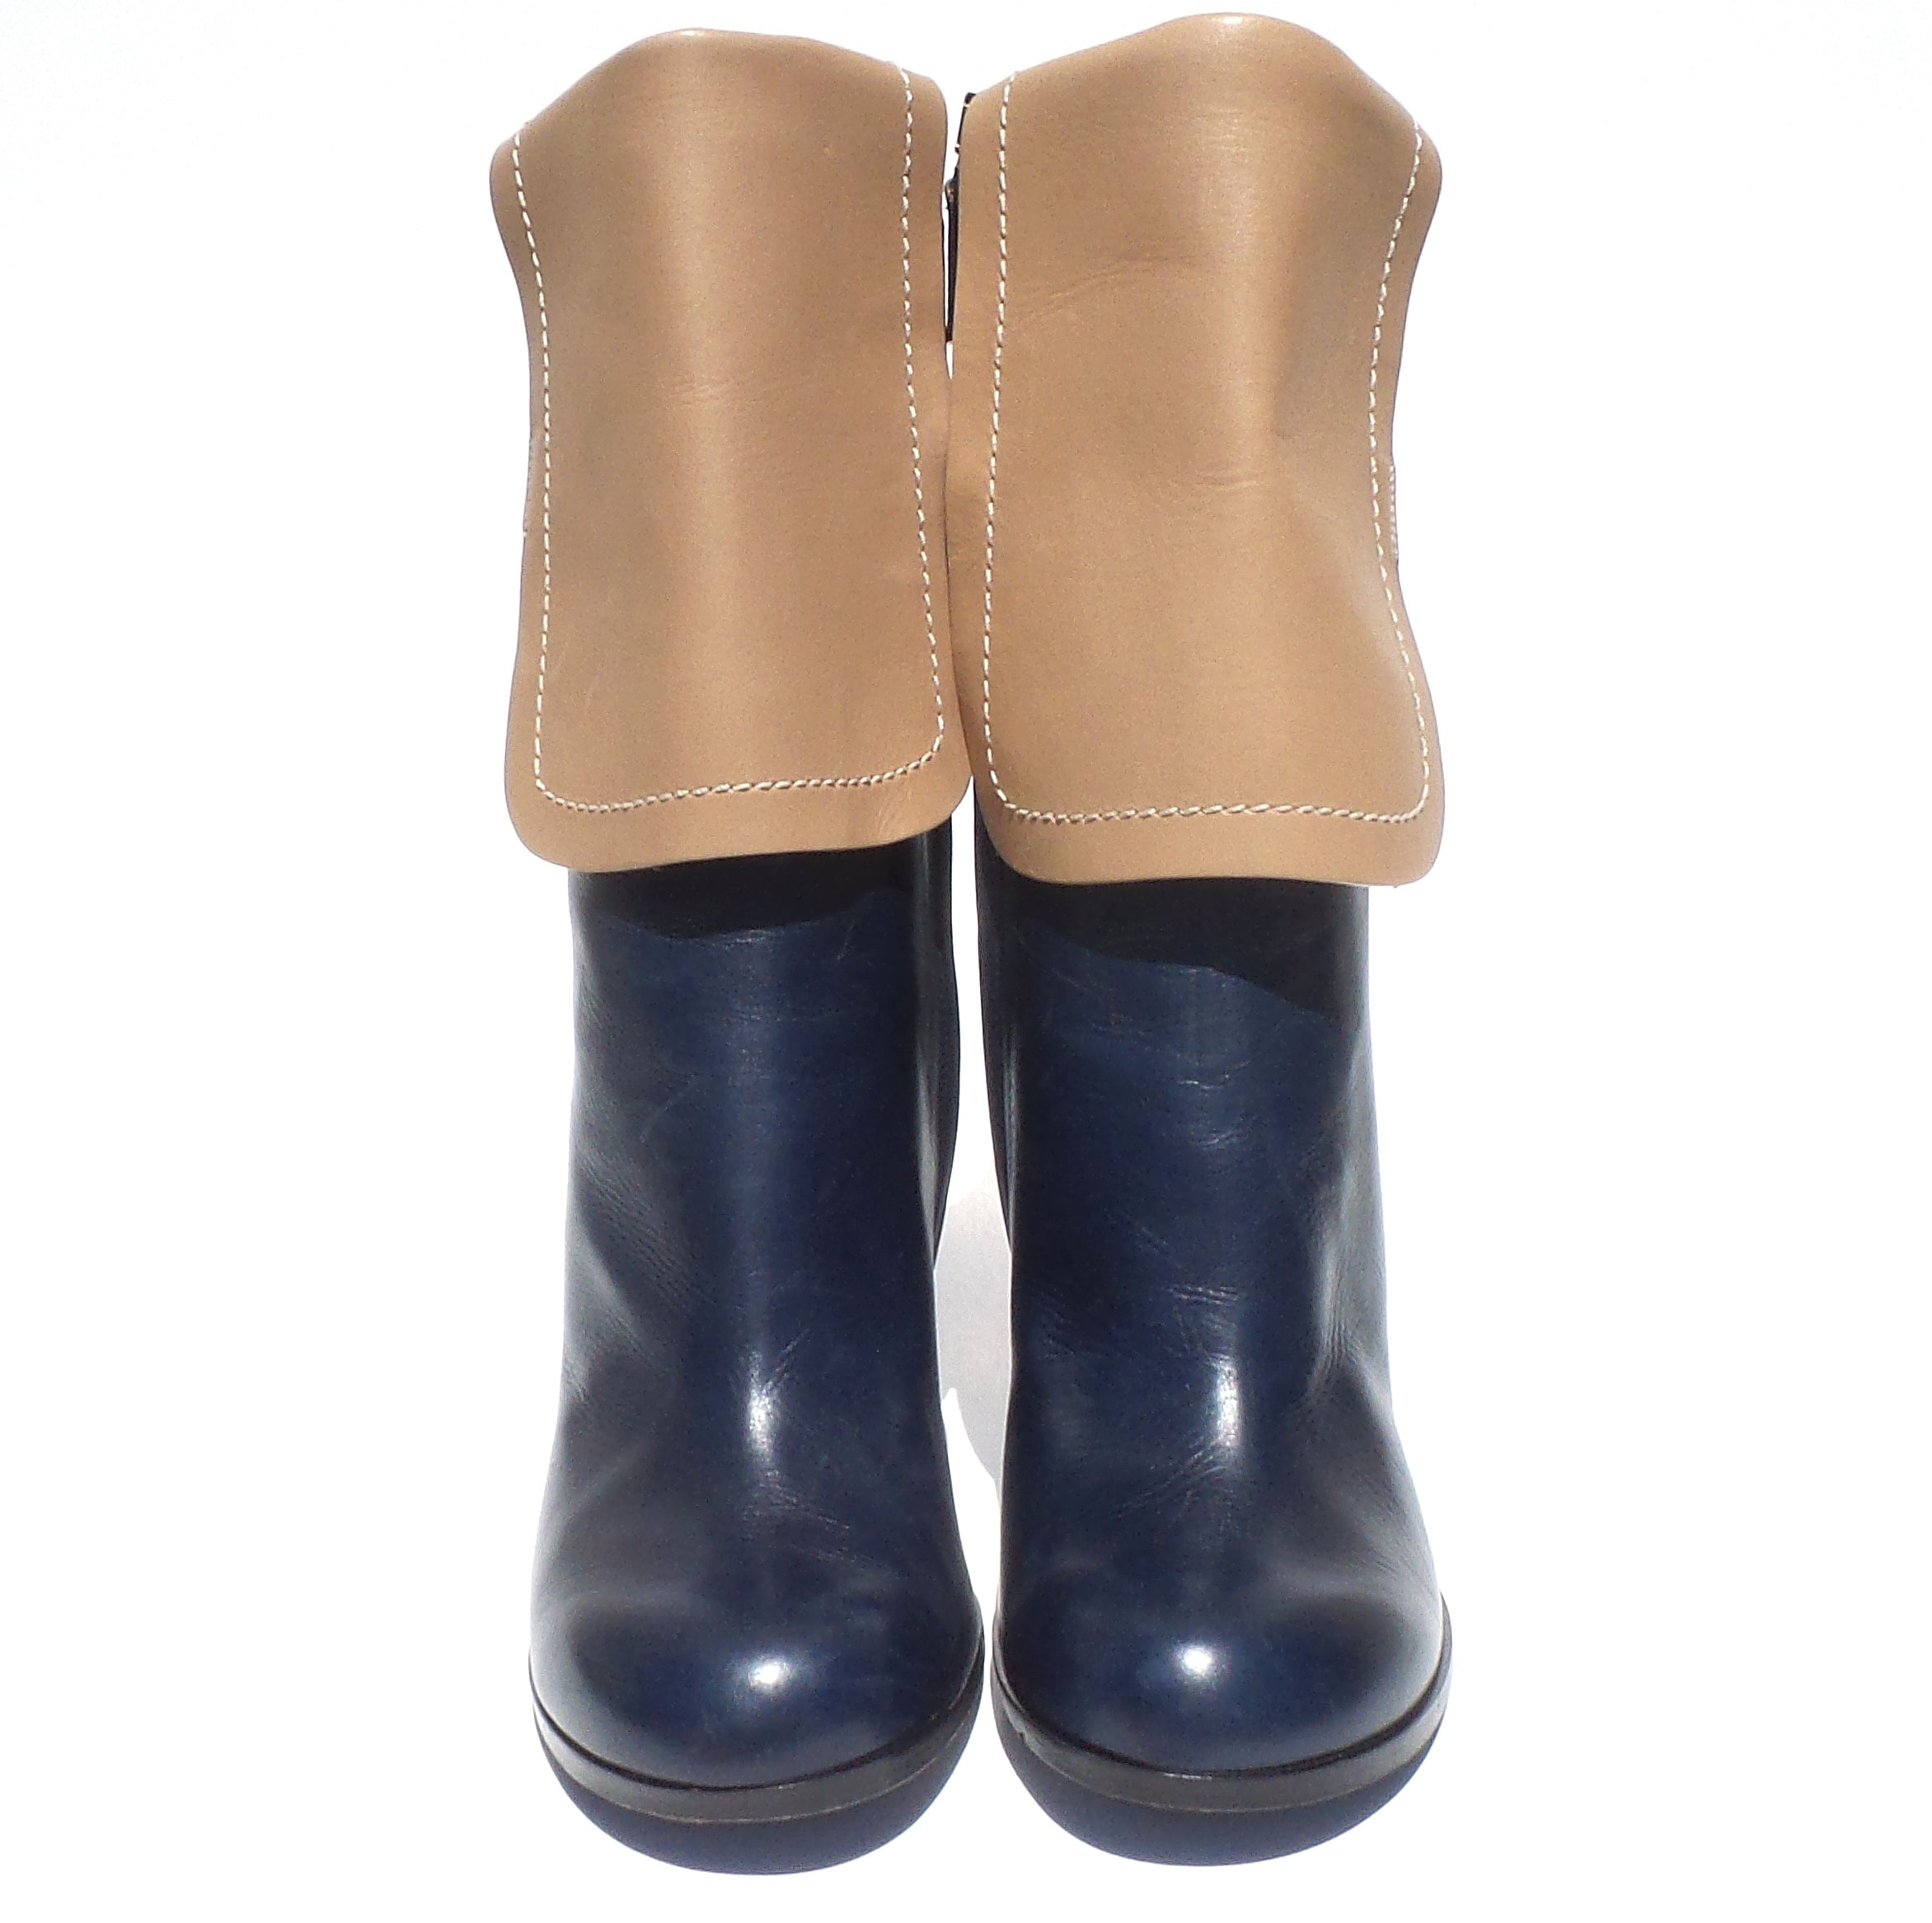 JIL SANDER Two Tone Navy Blue Tan Leather Rectangle Heel Mid Calf Zip Boots 39